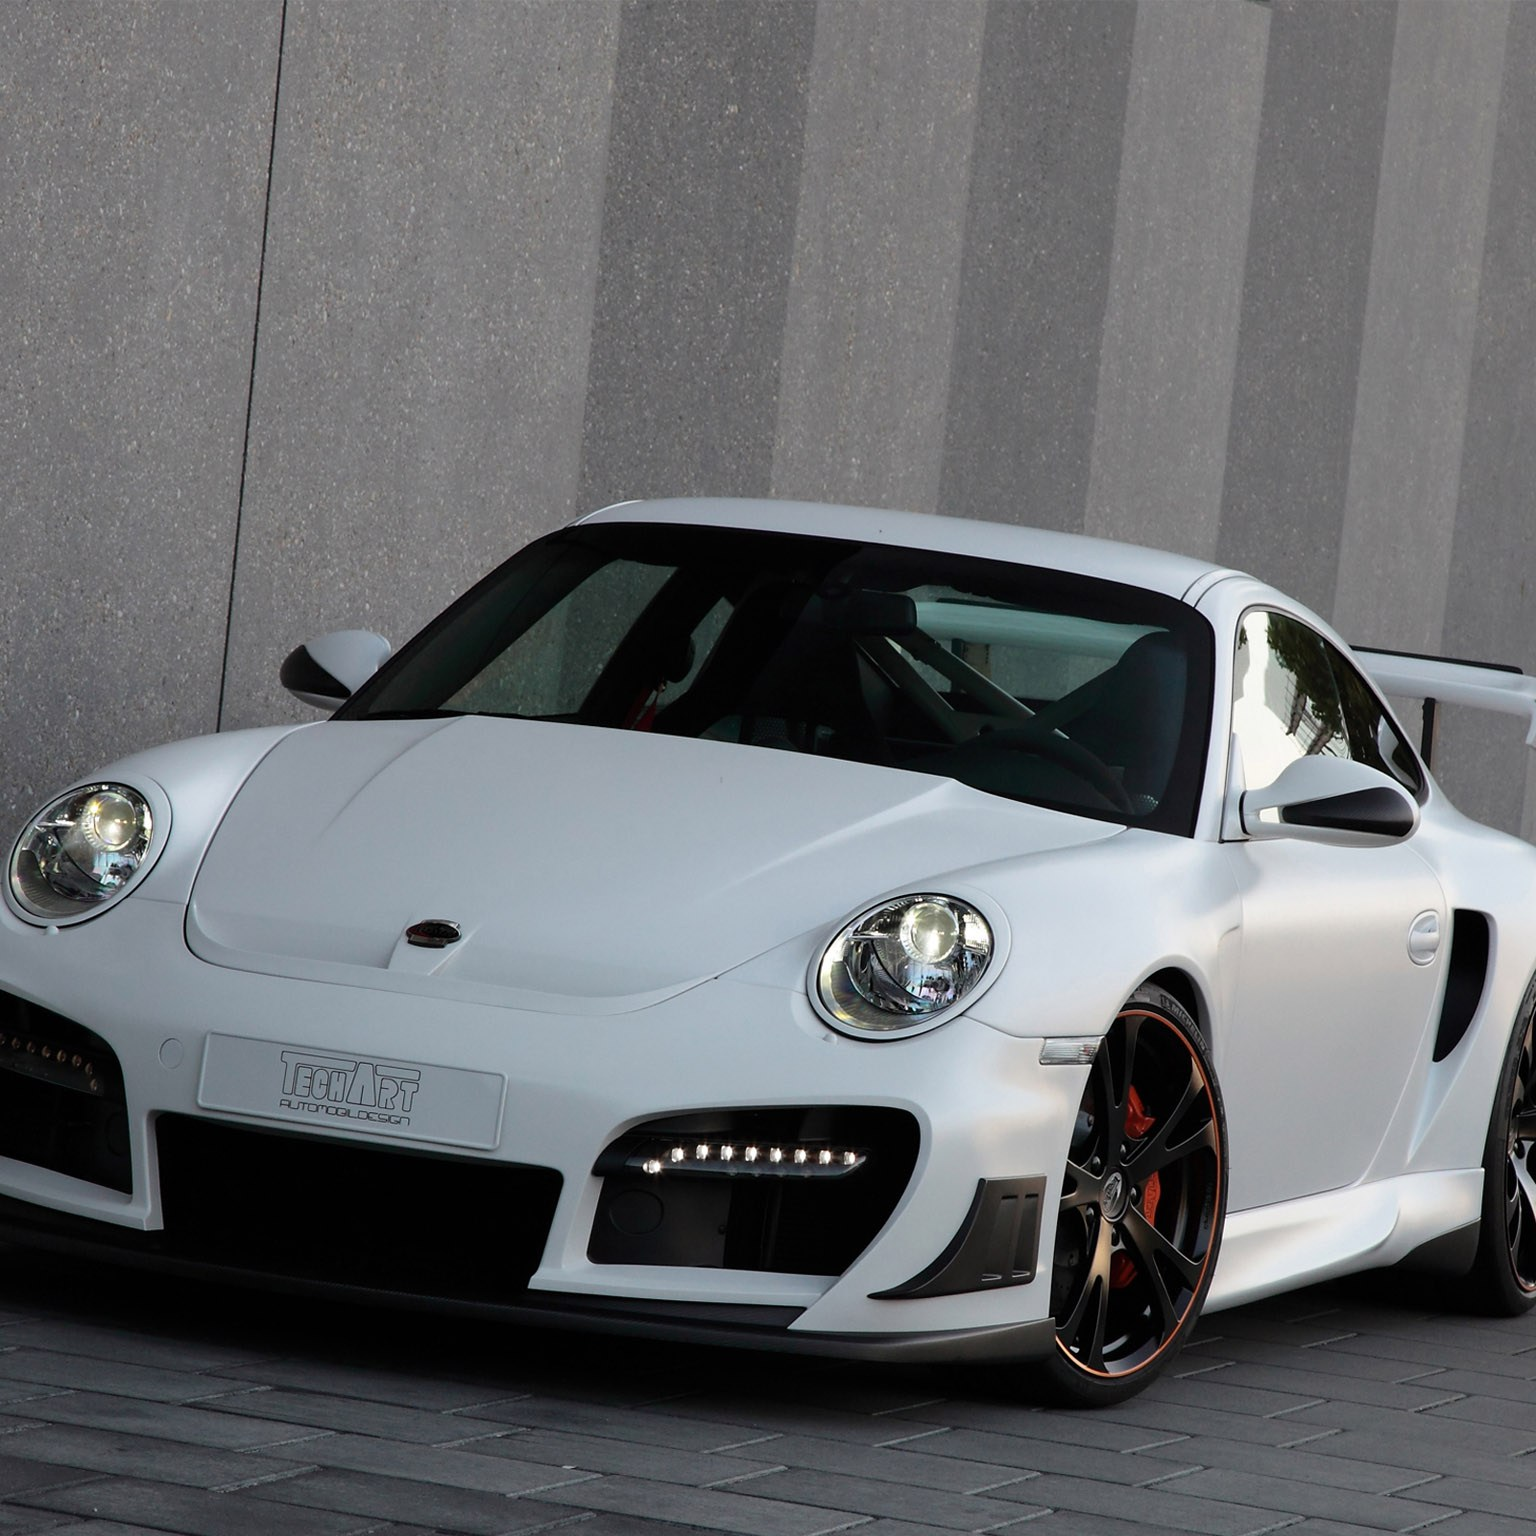 2010 Techart Porsche 911 GT Street RS 997